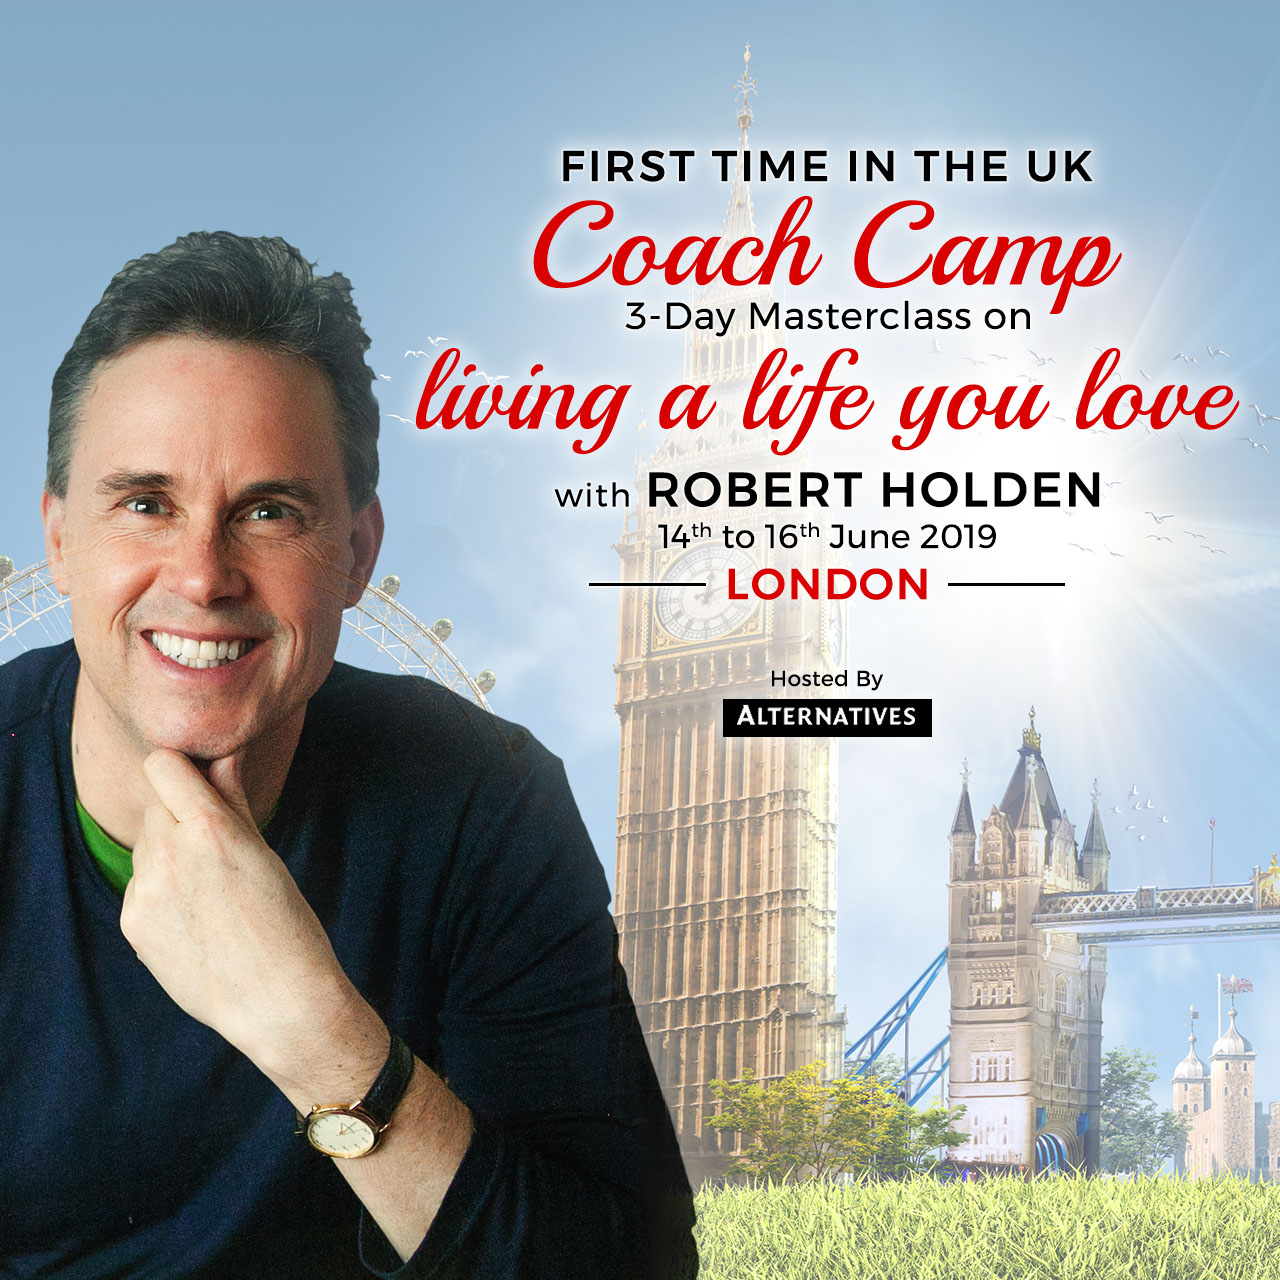 Coach Camp - London